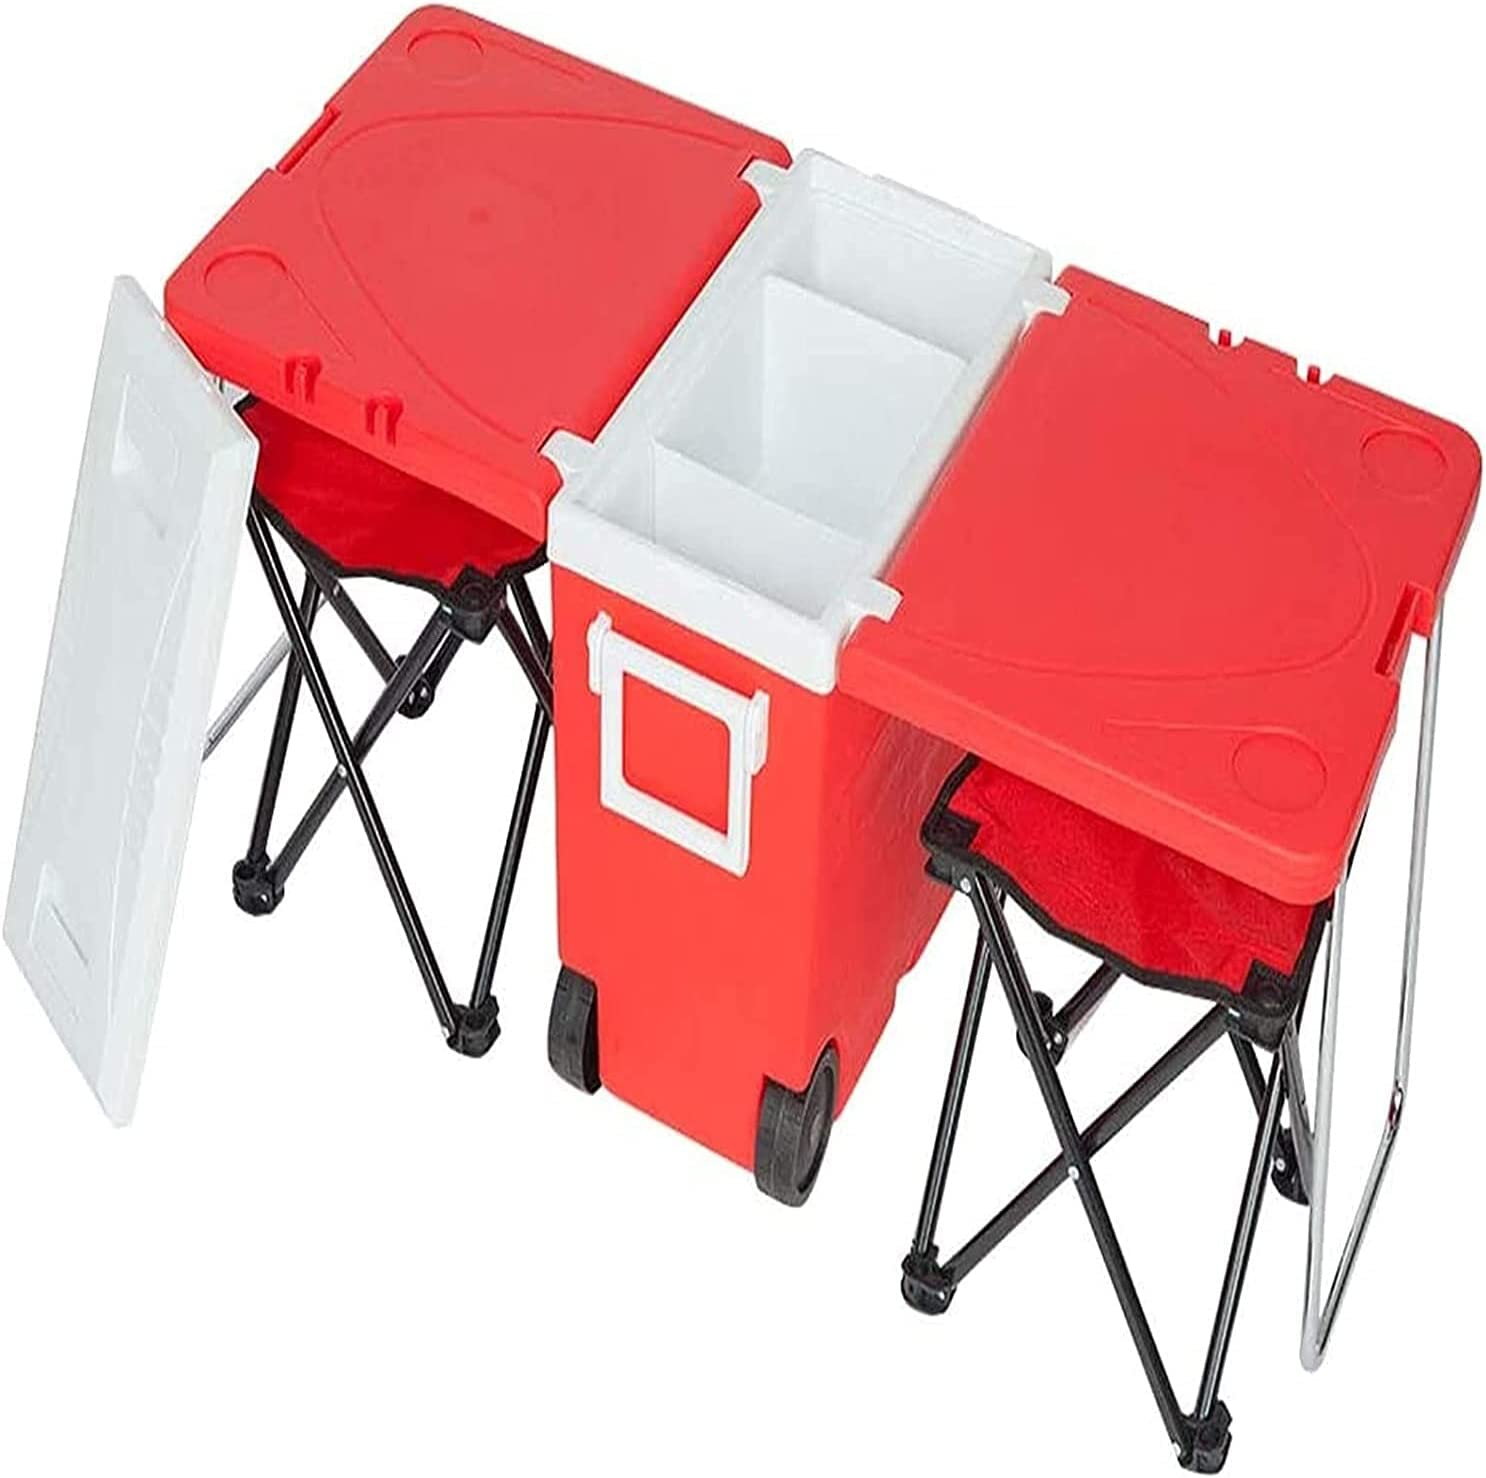 Philadelphia Mall HDHUIXS Compactly Outdoor Picnic Shipping included Multi-Function Foldable Rolling